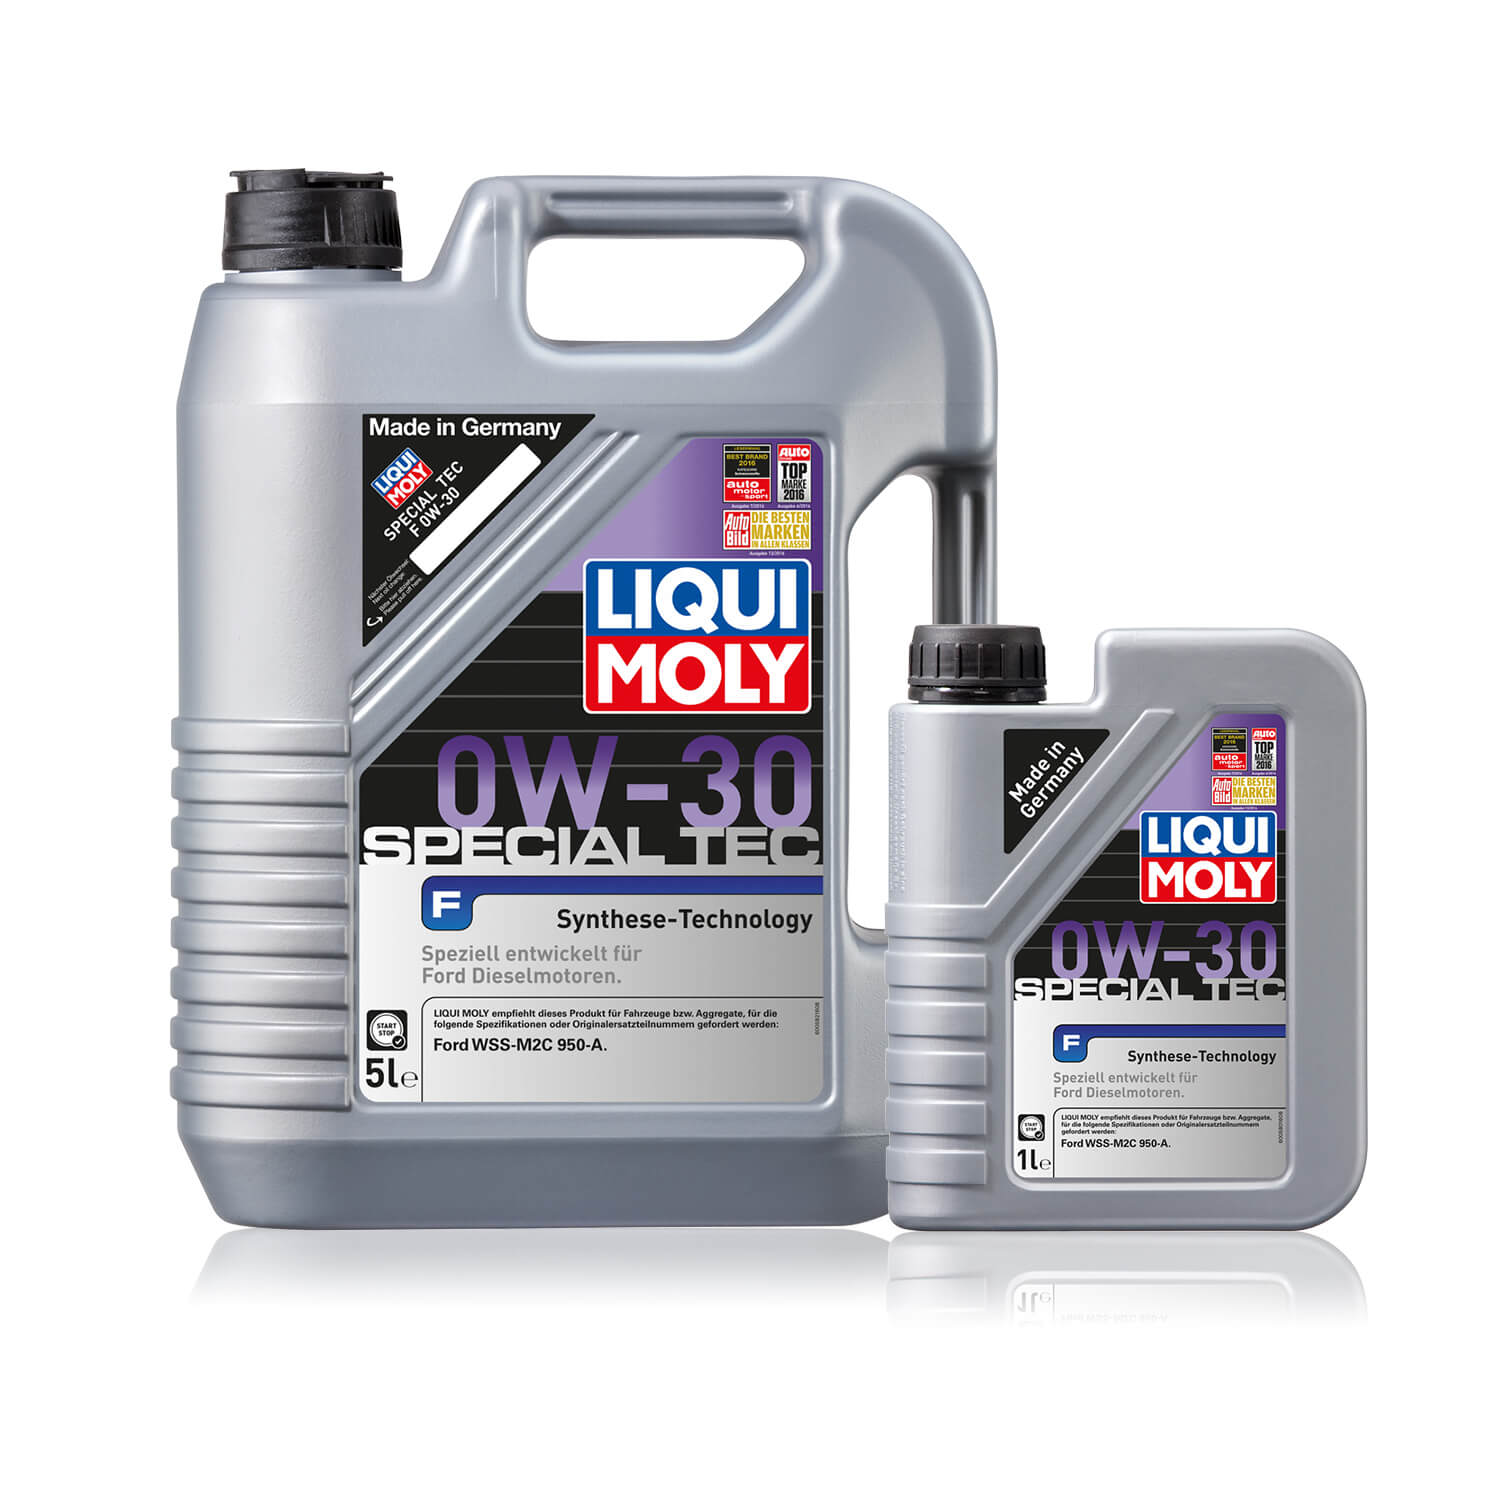 liqui moly special tec f 0w 30 f r ford tdci diesel auto. Black Bedroom Furniture Sets. Home Design Ideas